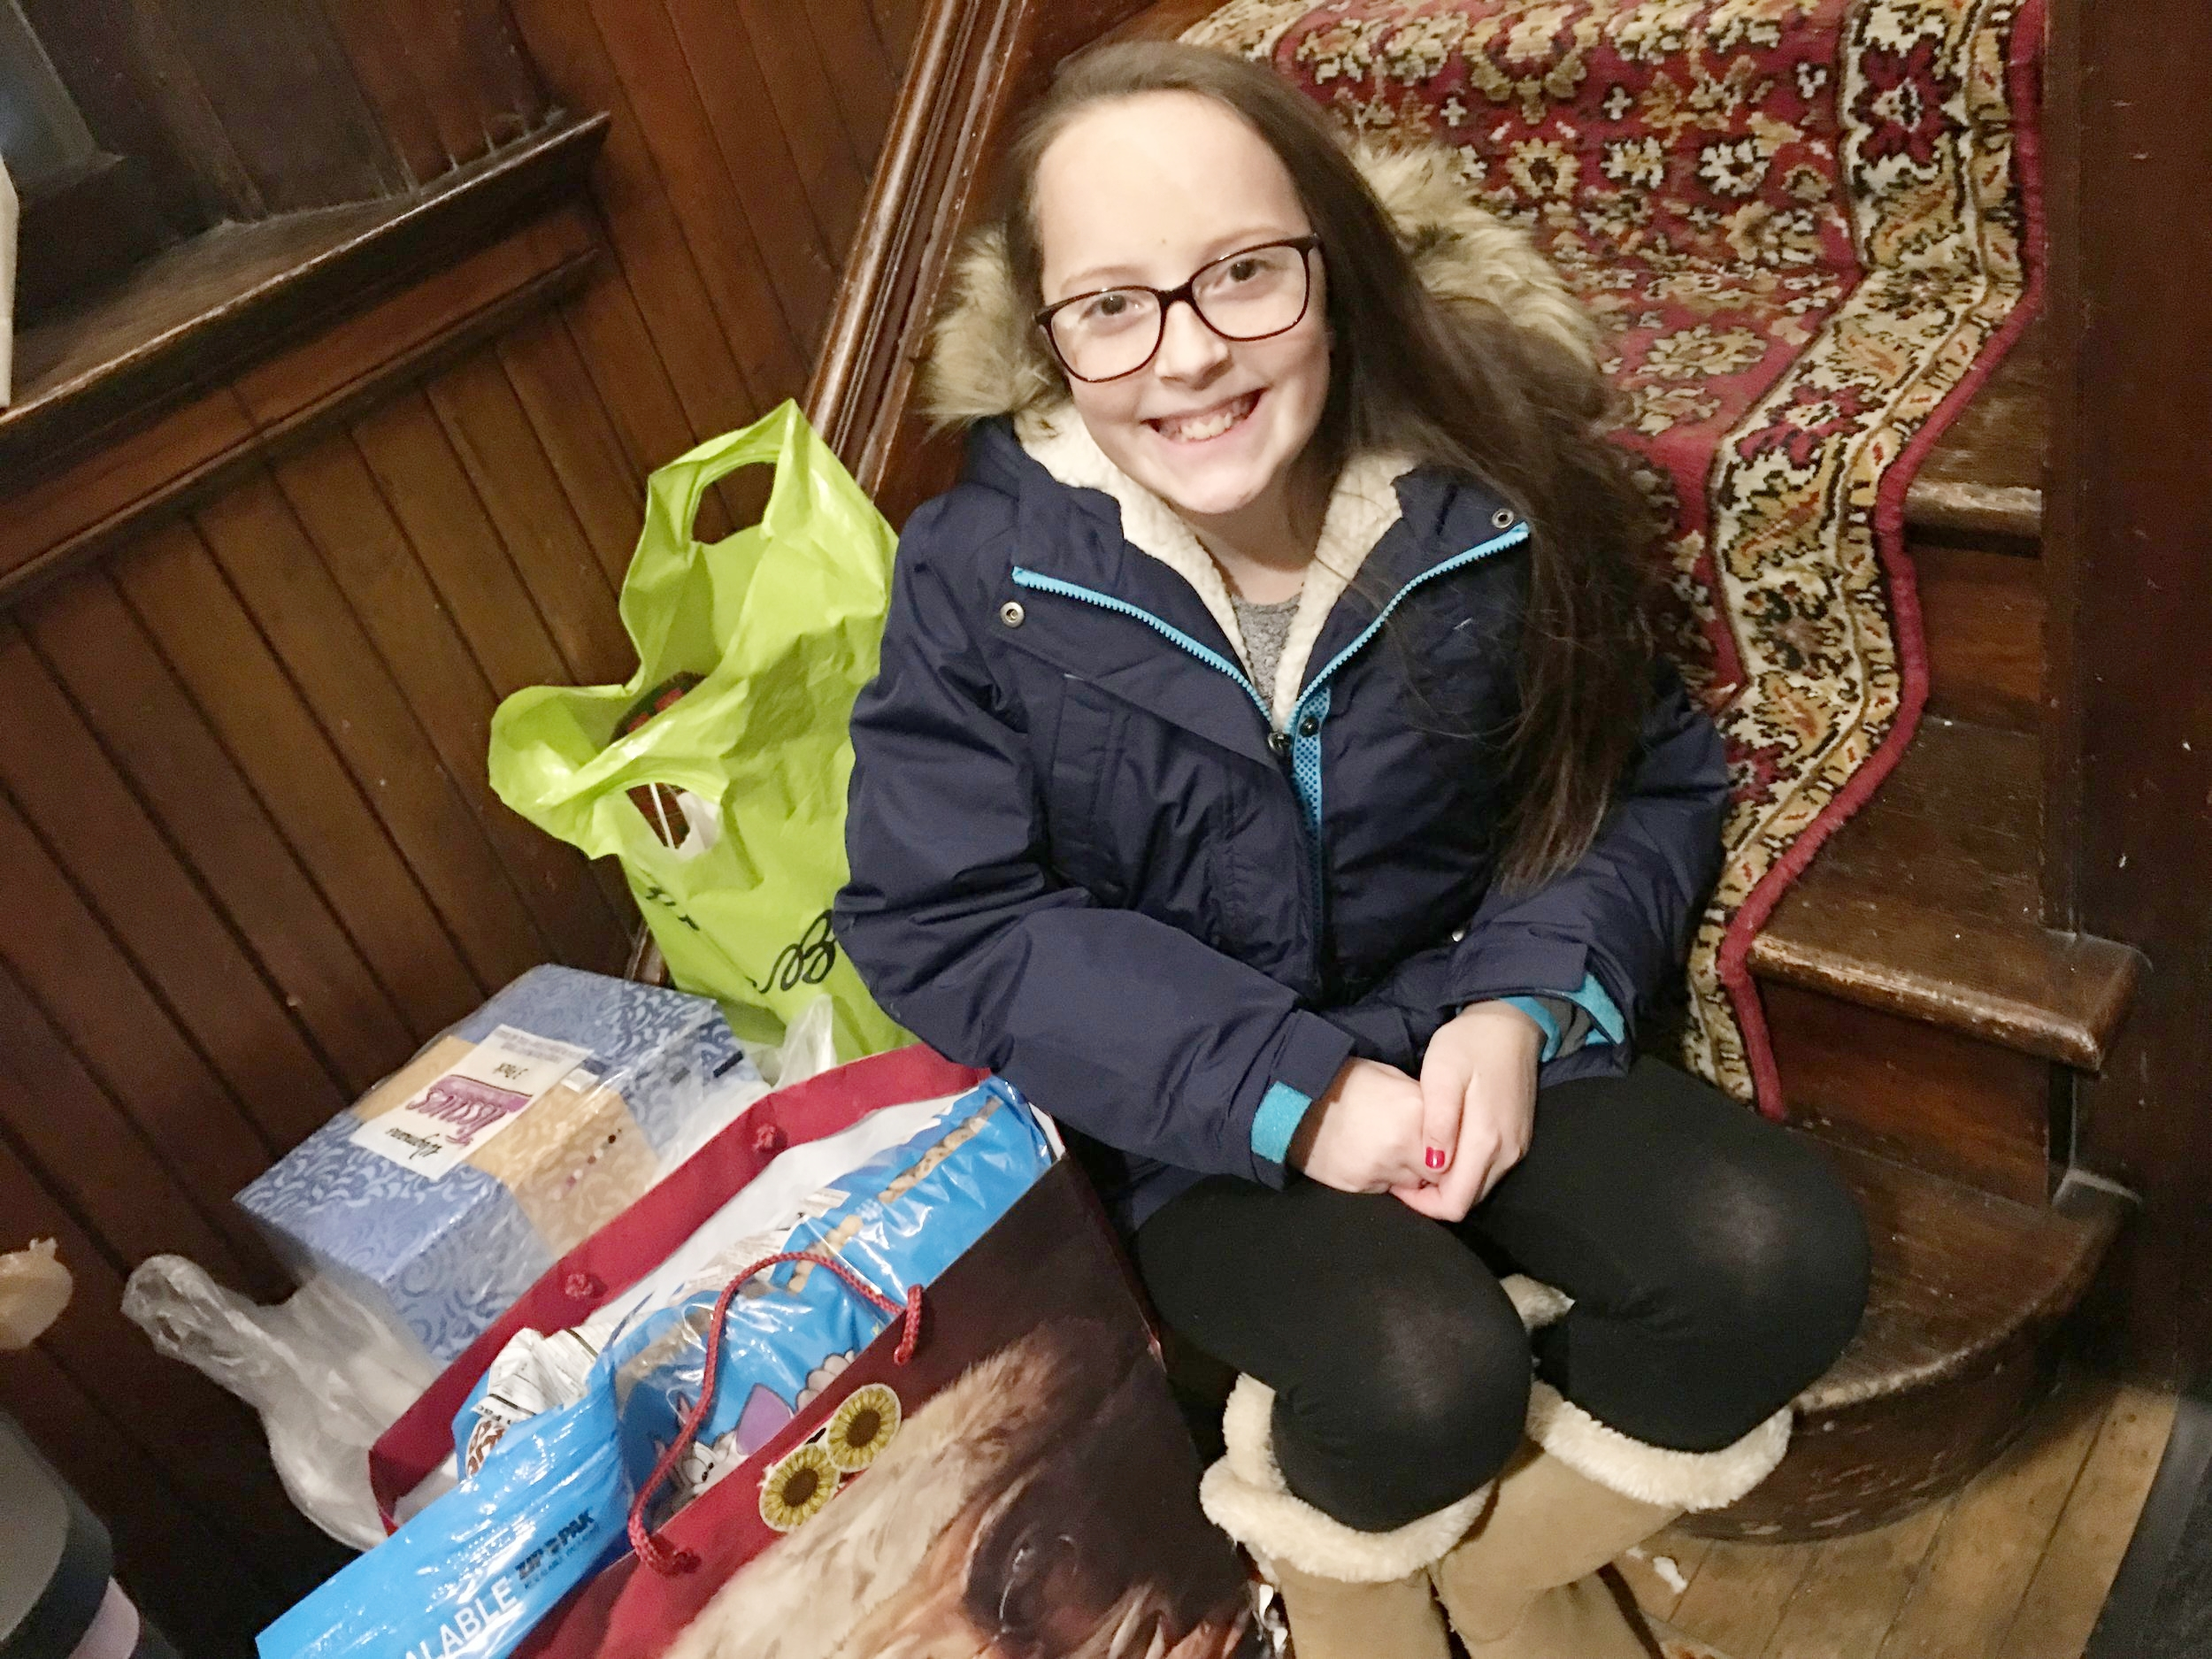 Sarah Prowak with some of her donation items